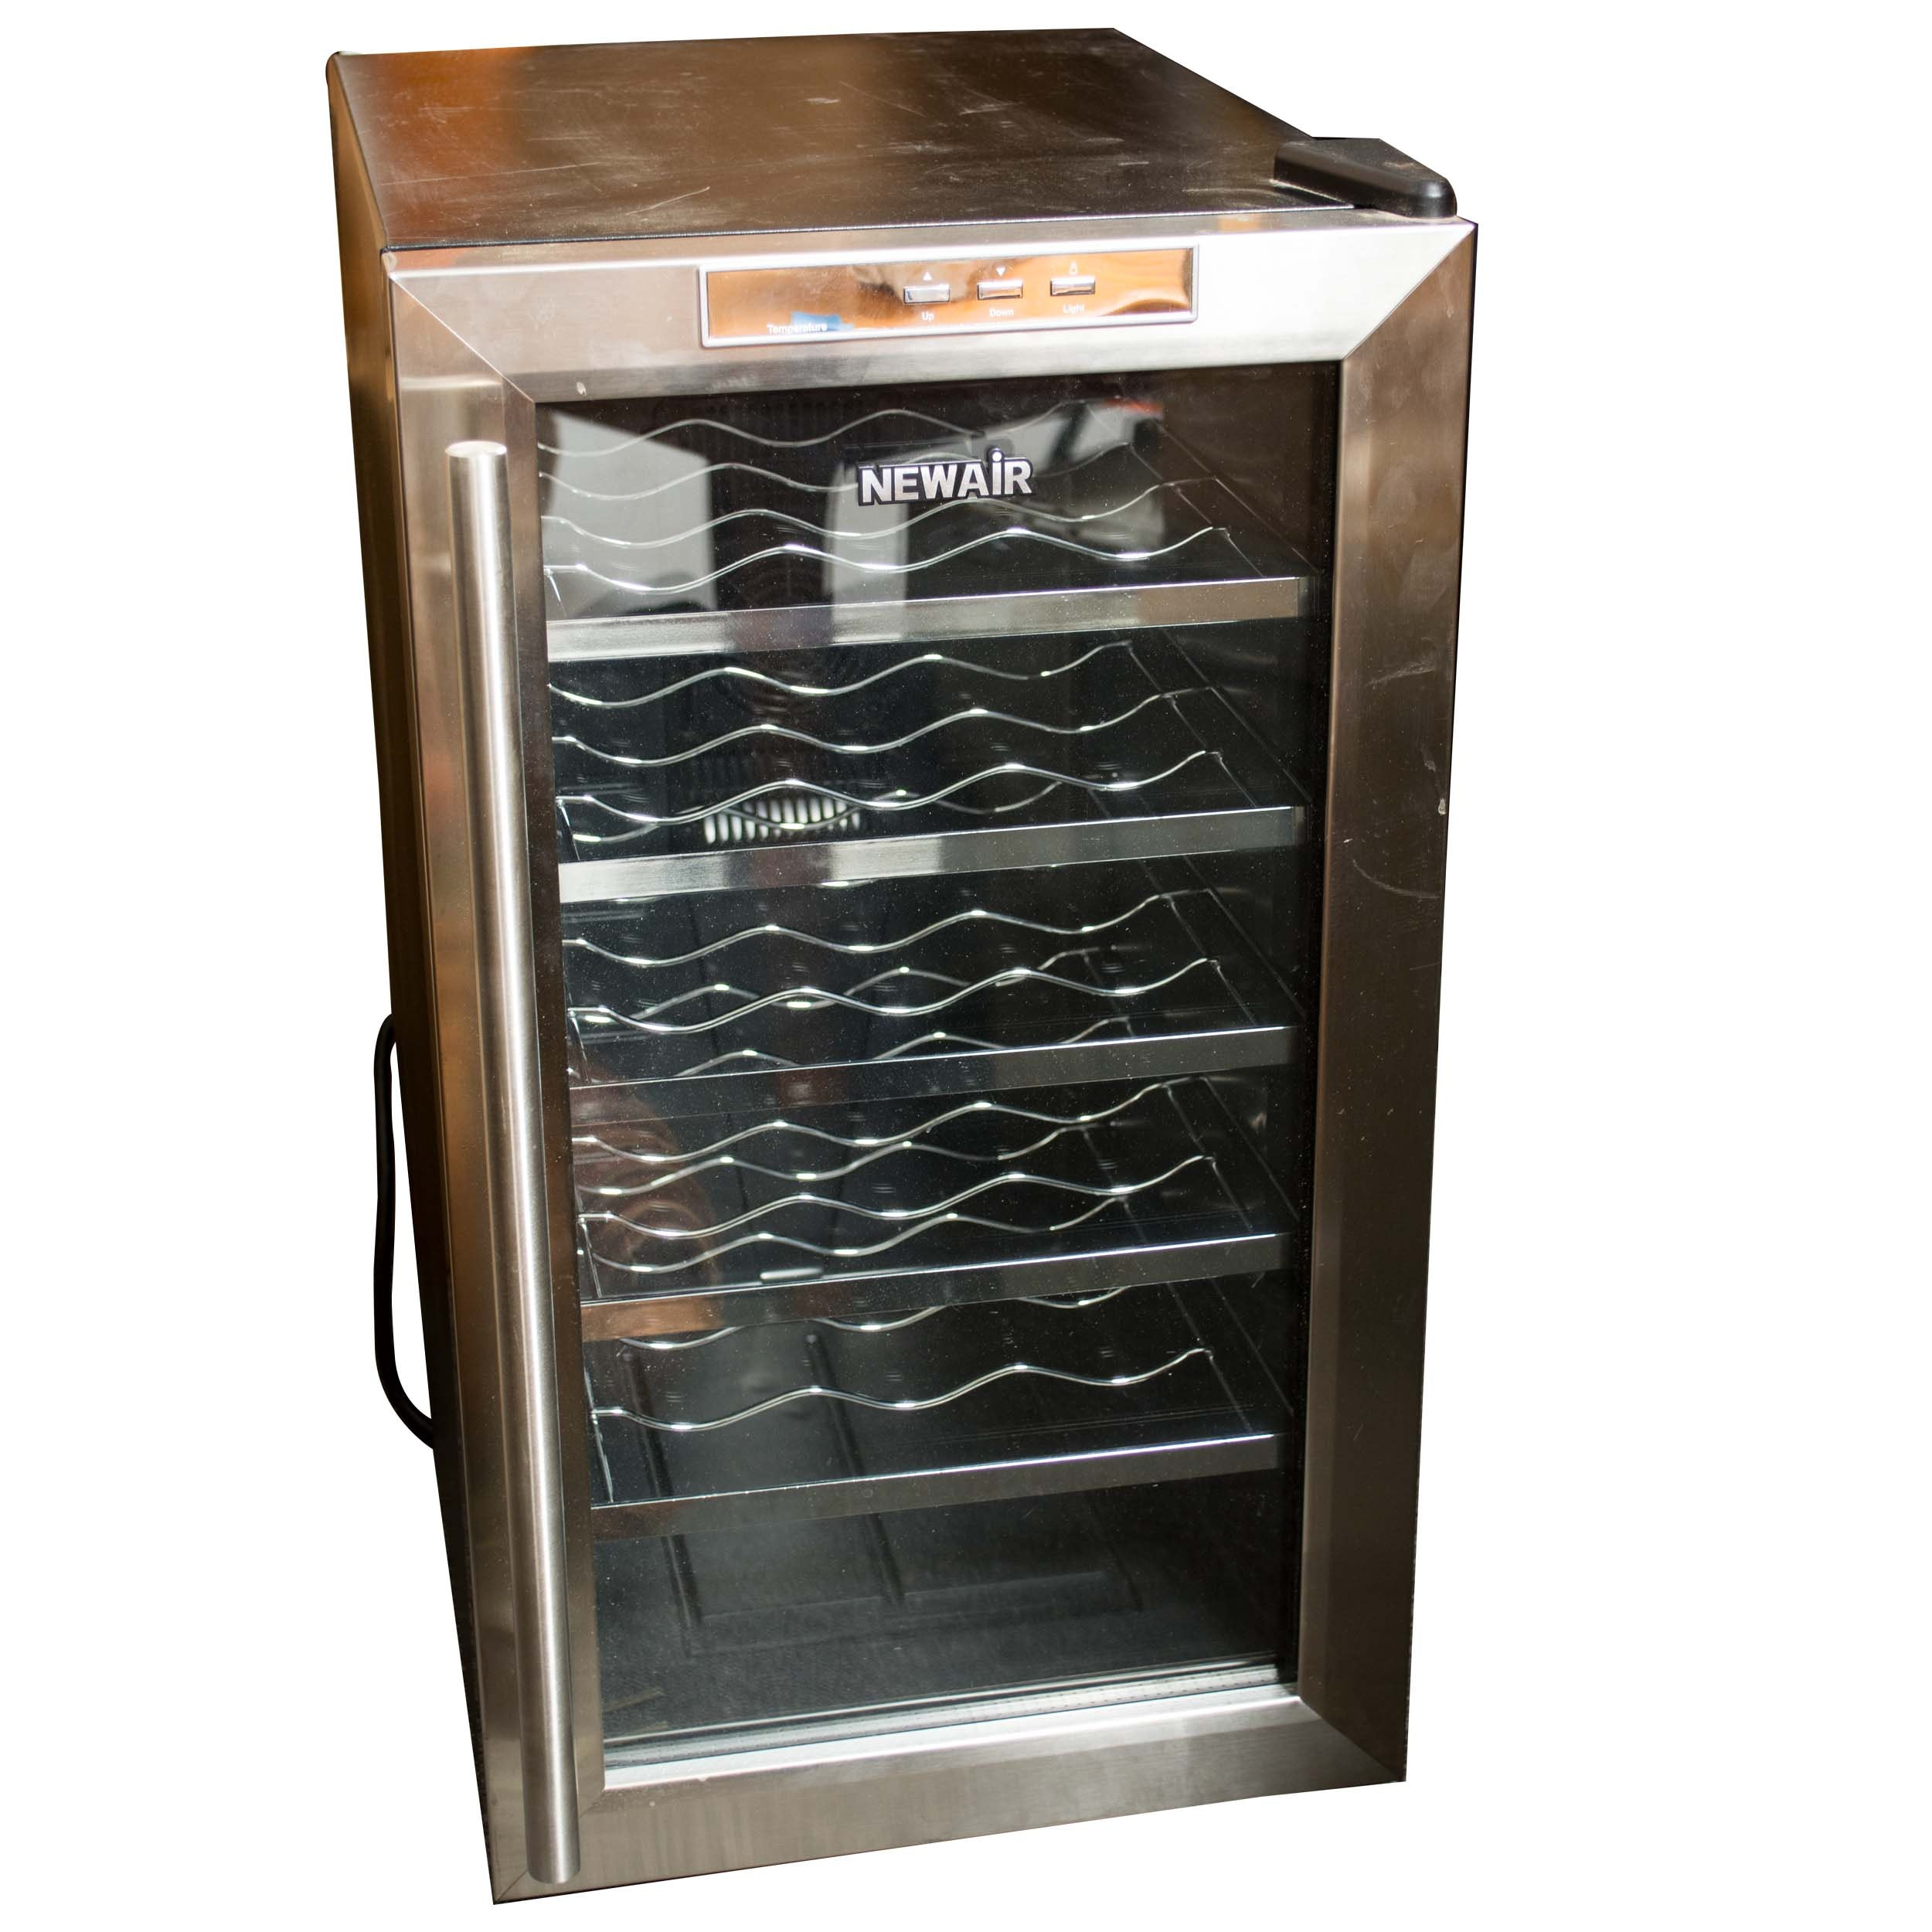 NewAir AW-181E Thermoelectric Wine Cooler,